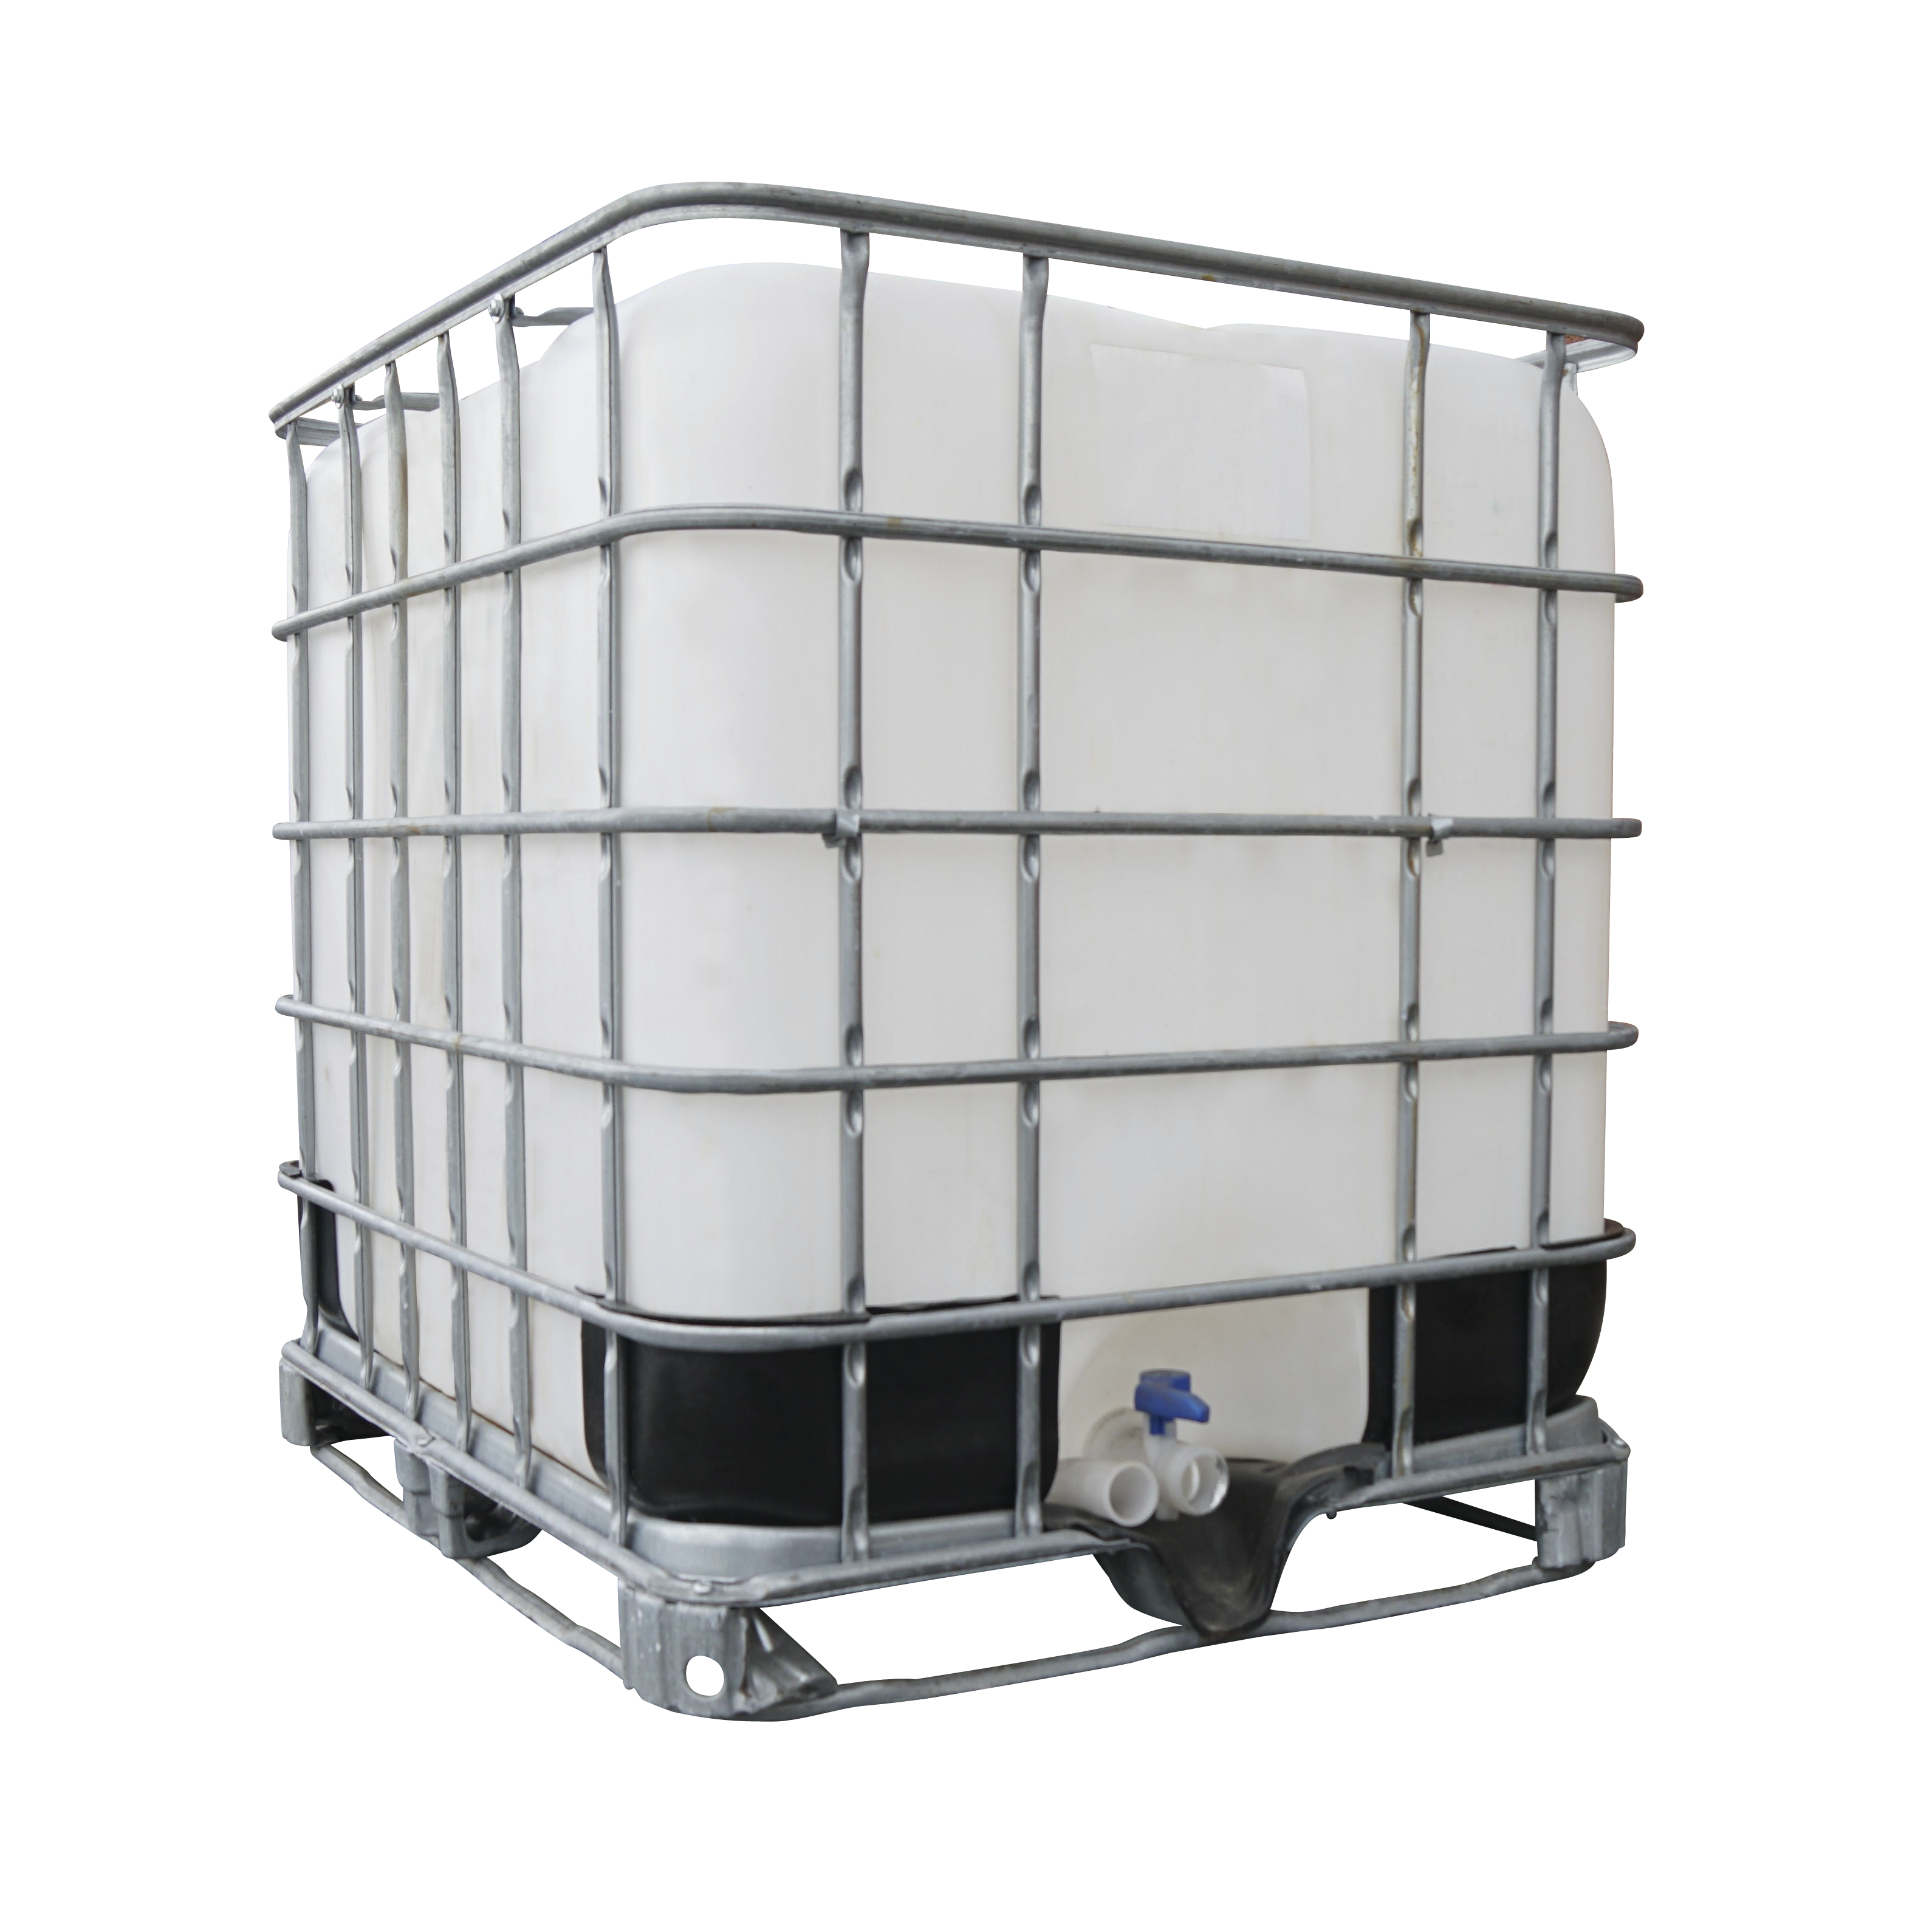 1000 Litre IBC Container with Tap and Frame to enable Forktruck Transportation